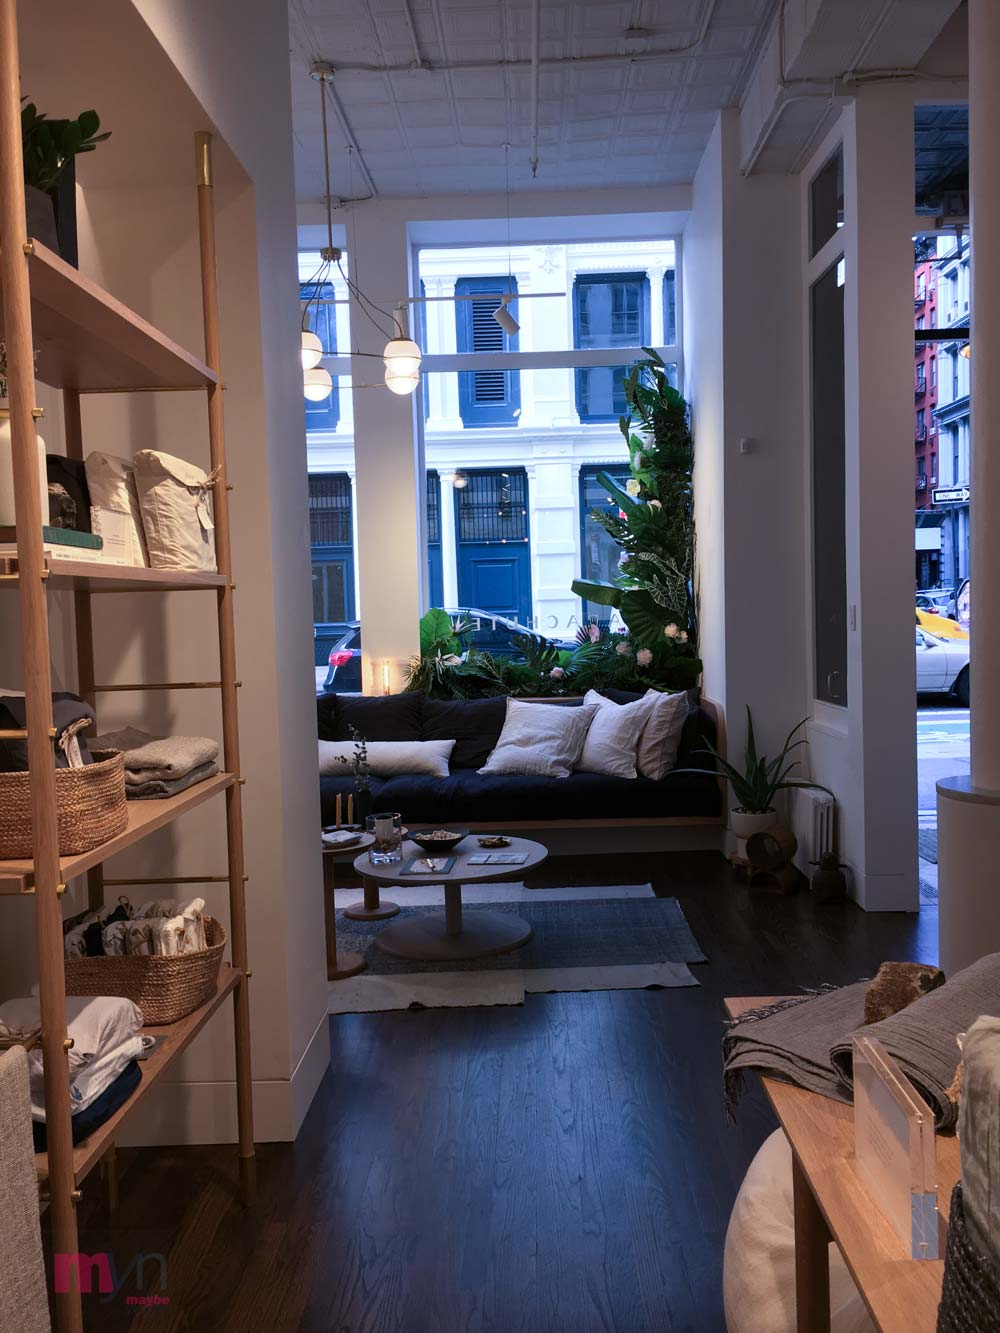 PARACHUTE NYC  INVITES YOU INTO A COZY, AIRY, OPEN SPACE SOHO STORE FILLED WITH SHEETS, BATH LINENS & HOME DÈCOR ACCESSORIES